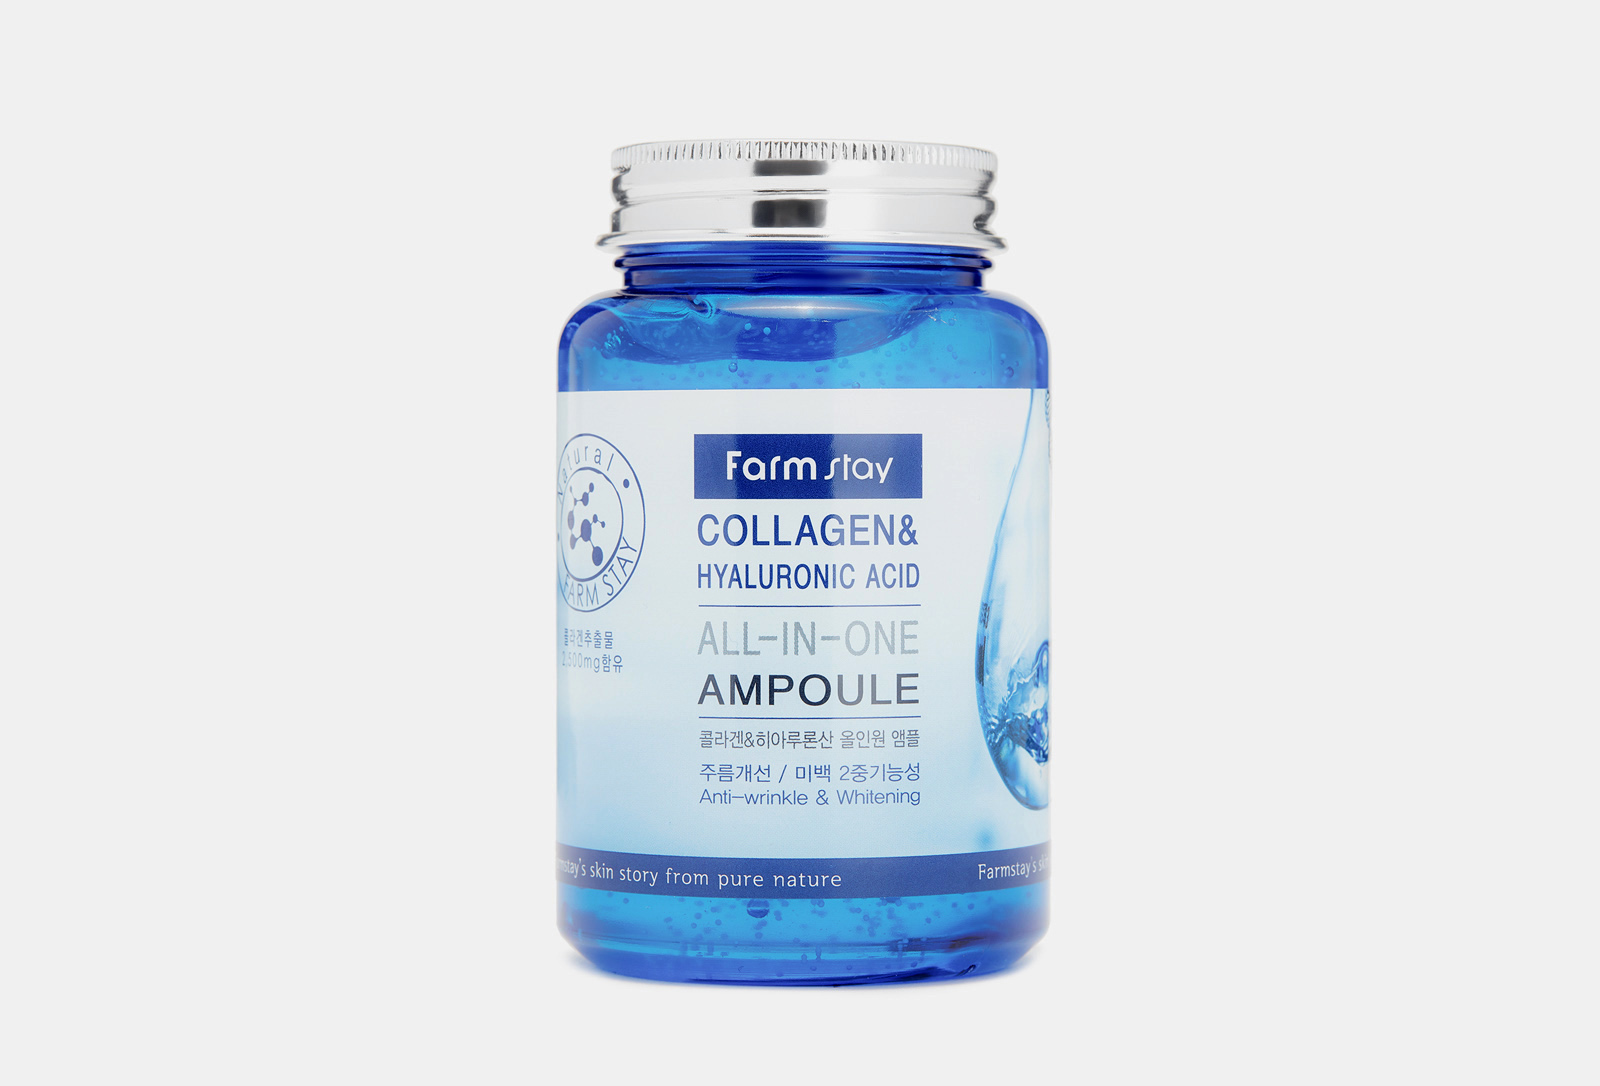 Collagen&Hyaluronic Acid all-in-one Ampoule